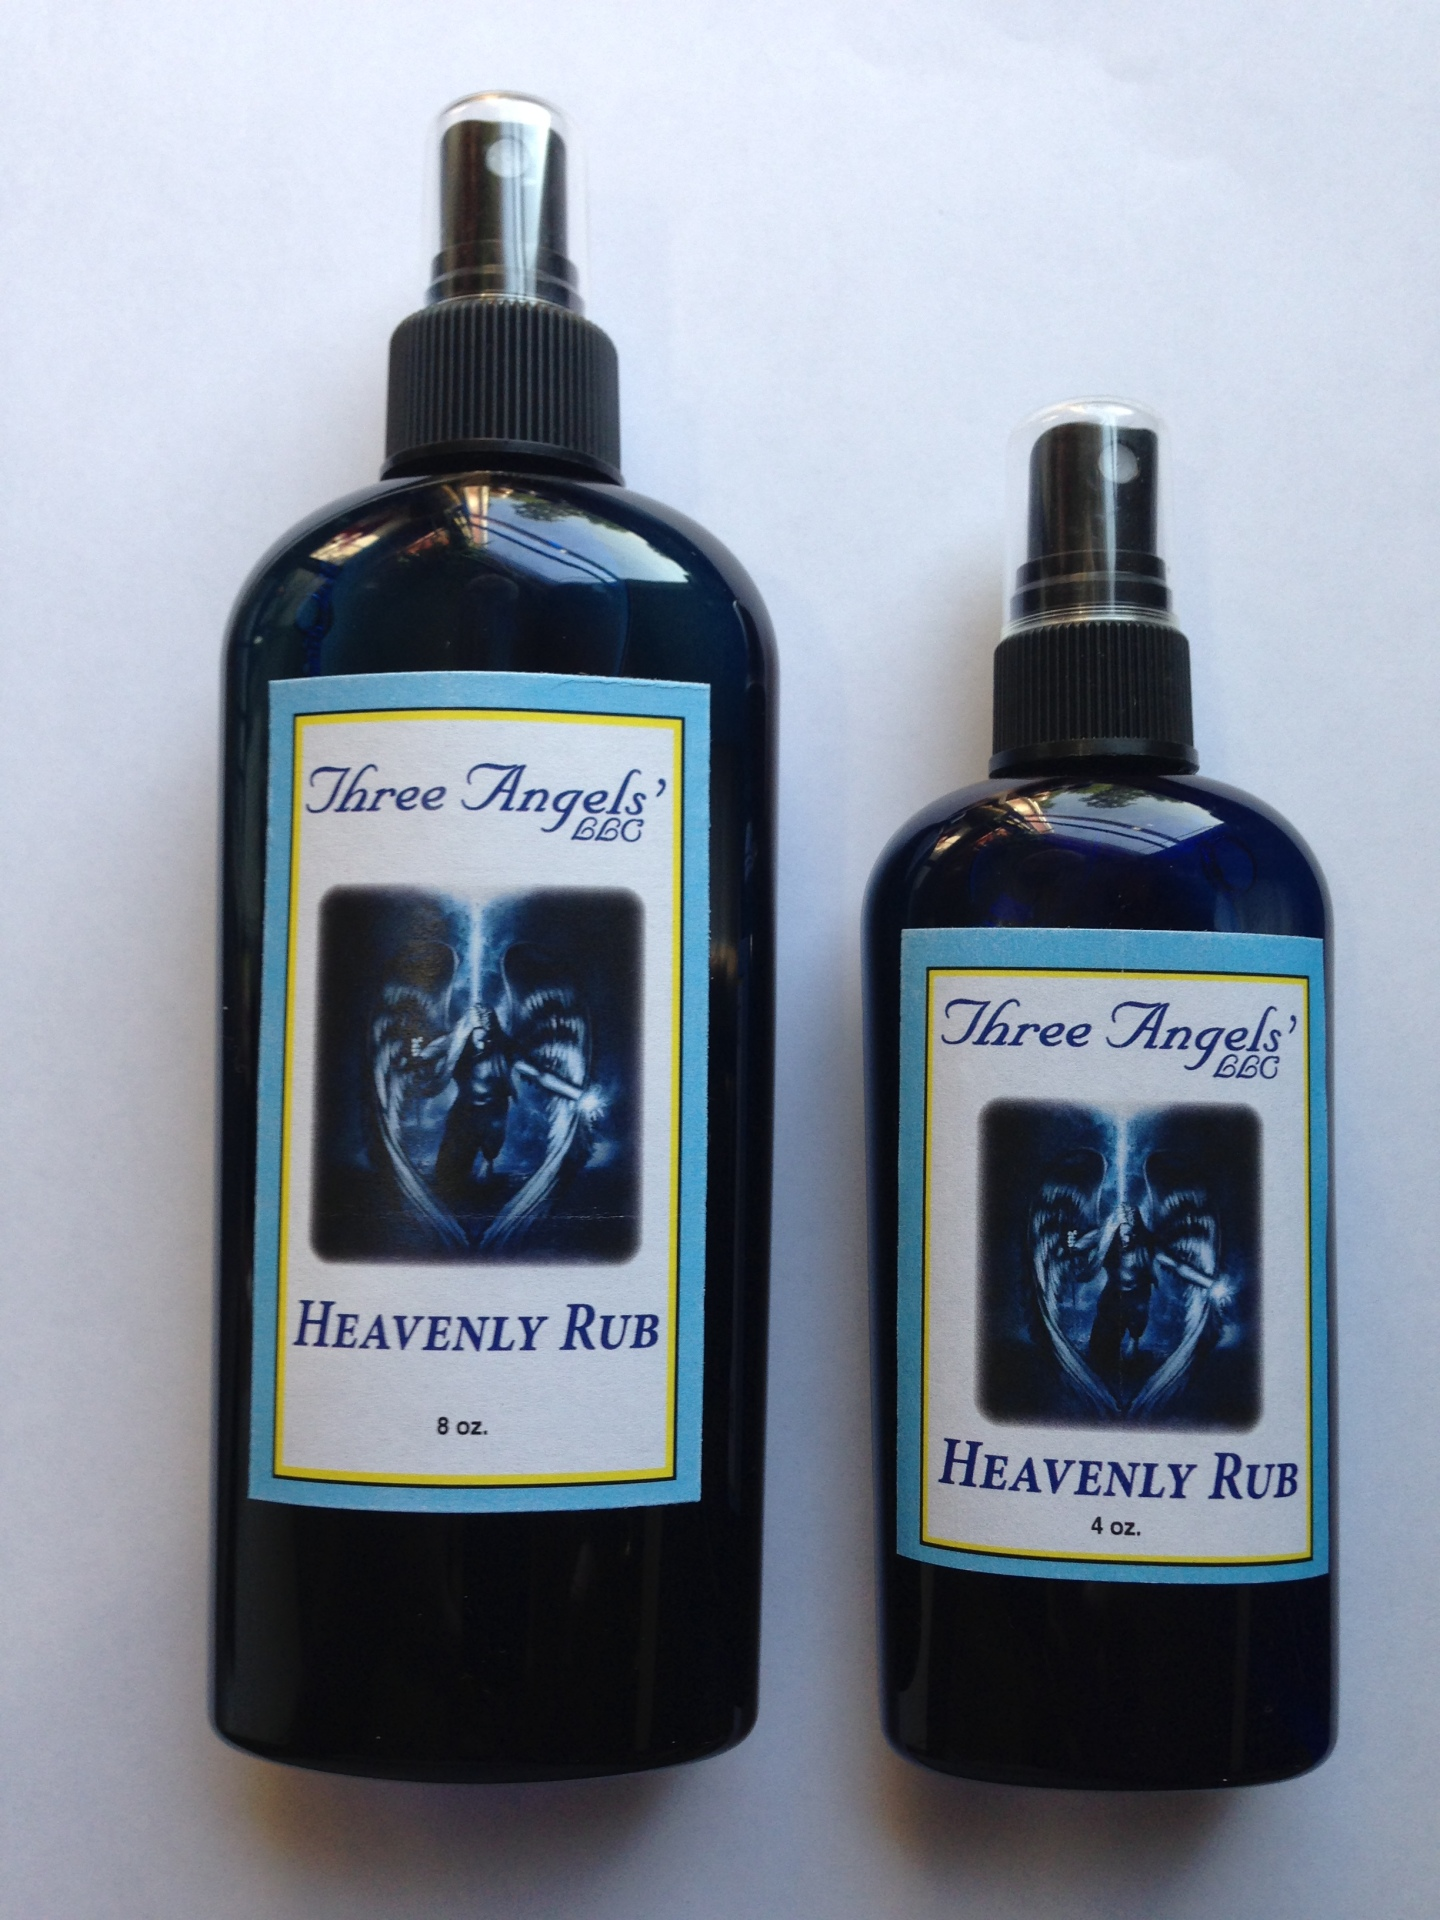 Three Angels' Heavenly Rub - for bruises, joints, aches and pain